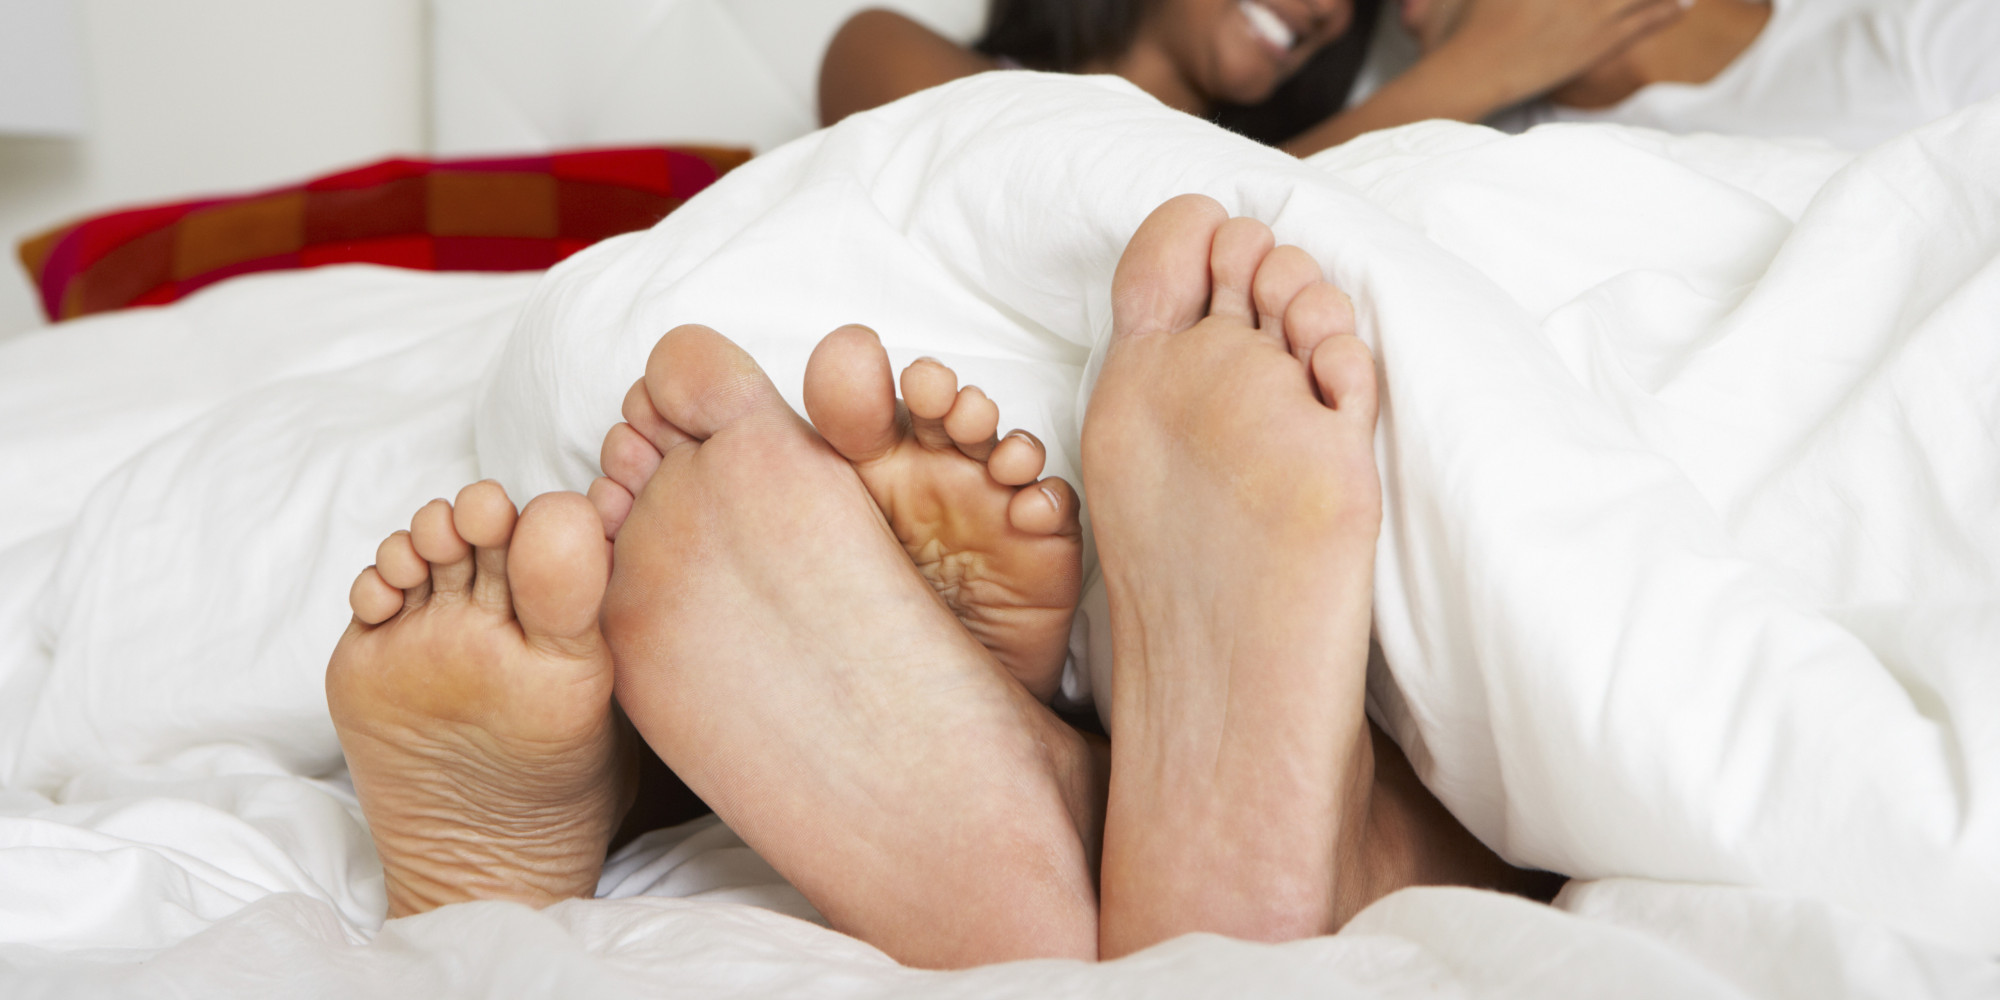 alexis ass big curvy tit williams